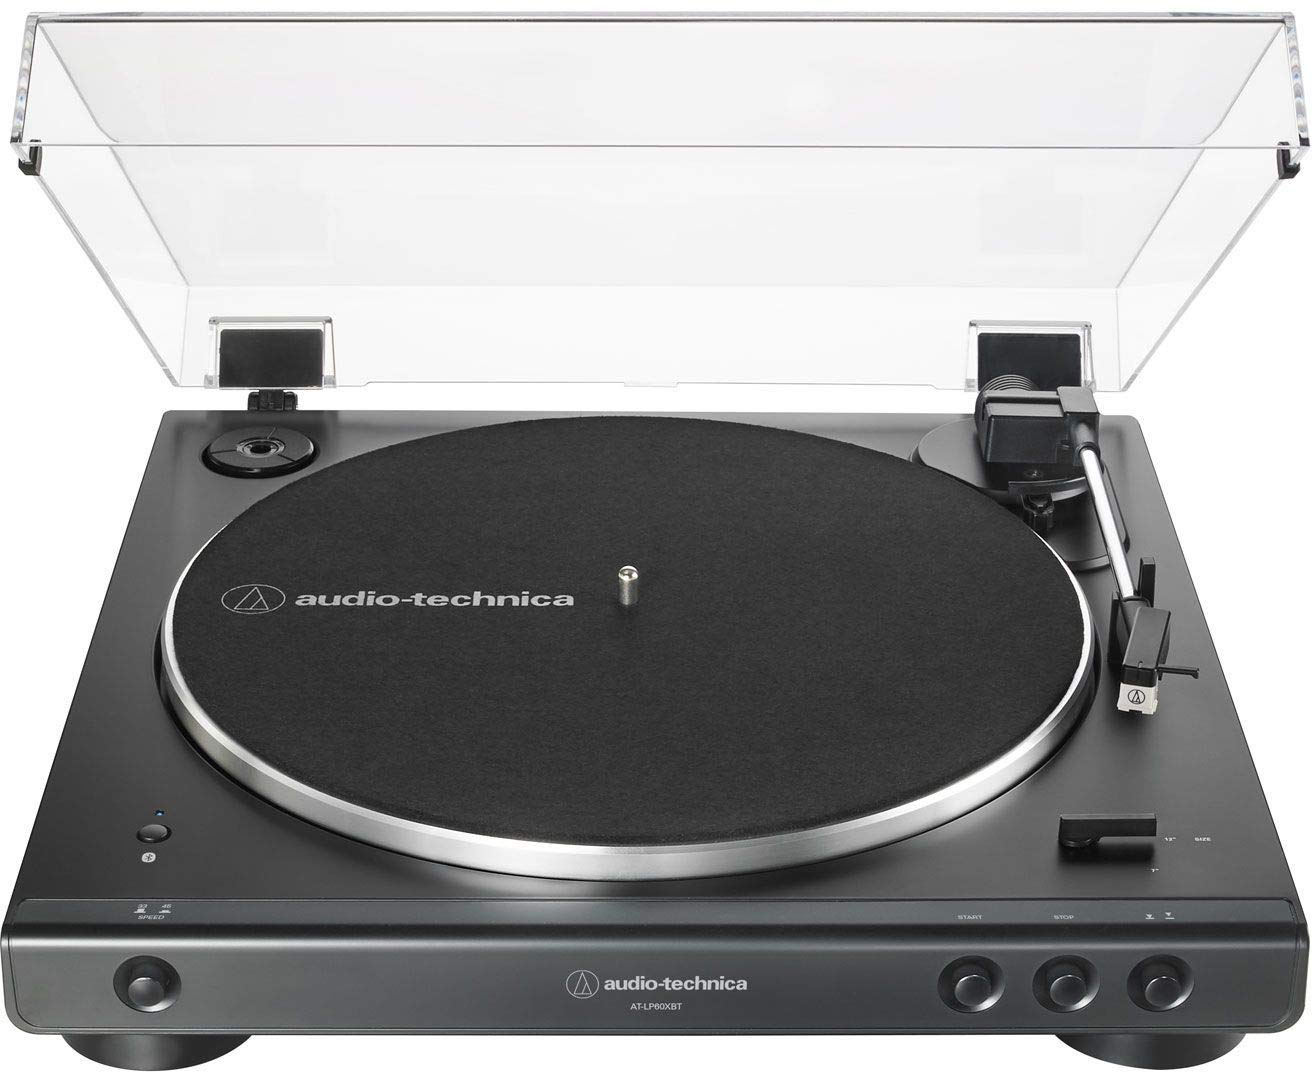 Audio-Technica AT-LP60XBT-BK Fully Automatic Bluetooth Belt-Drive Stereo Turntable, Black, Hi-Fidelity, Plays 33 -1/3 and 45 RPM Vinyl Records, Dust Cover, Anti-Resonance, Die-cast Aluminum Platter by Audio-Technica